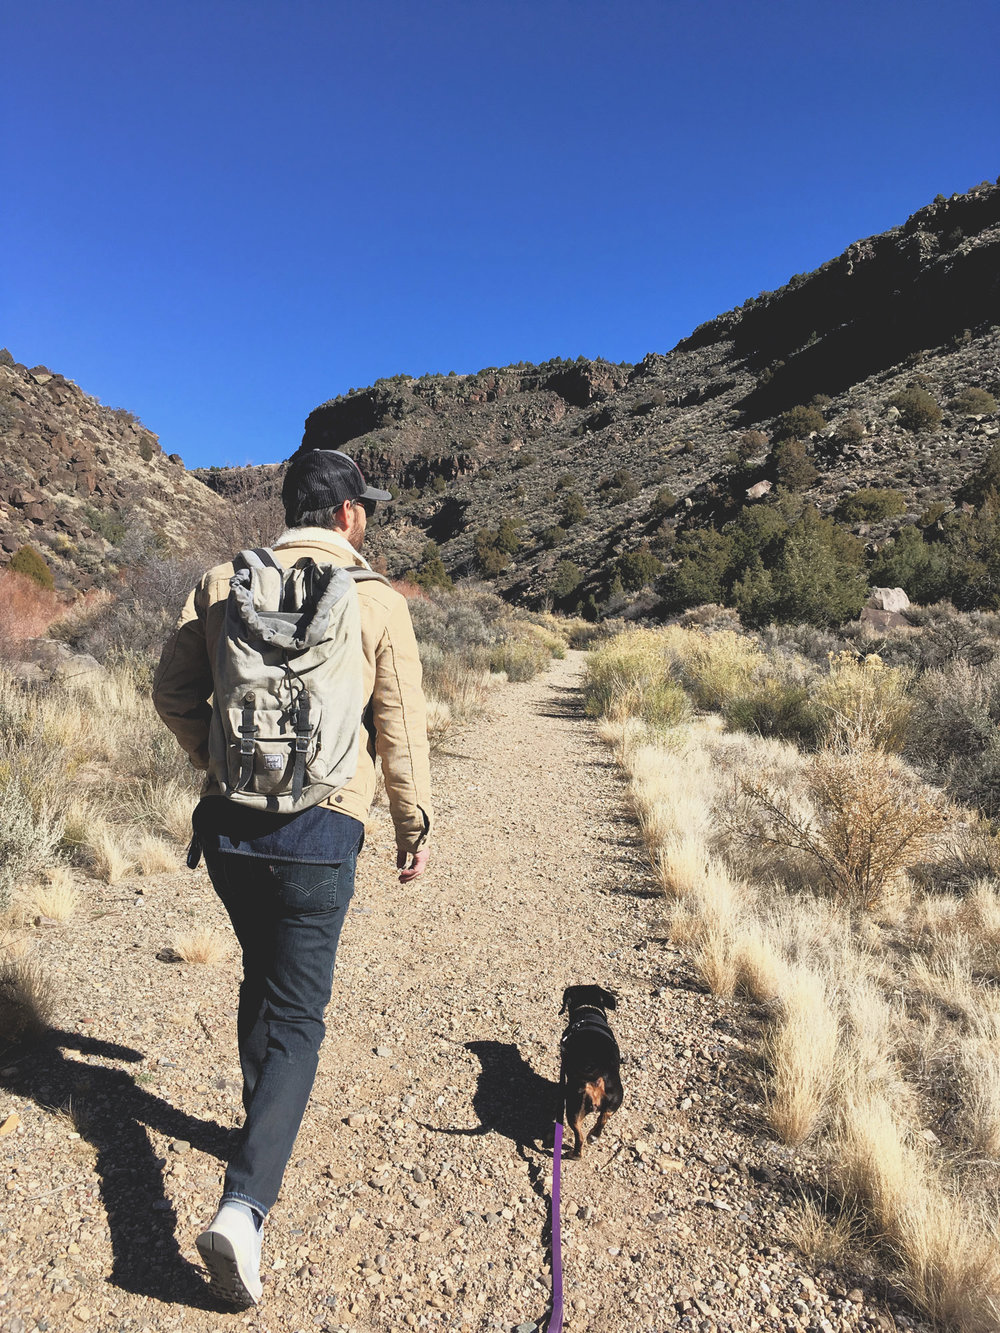 5 Favorite Day Hikes in Taos | Busy Campers: An Airstream Travel Journal